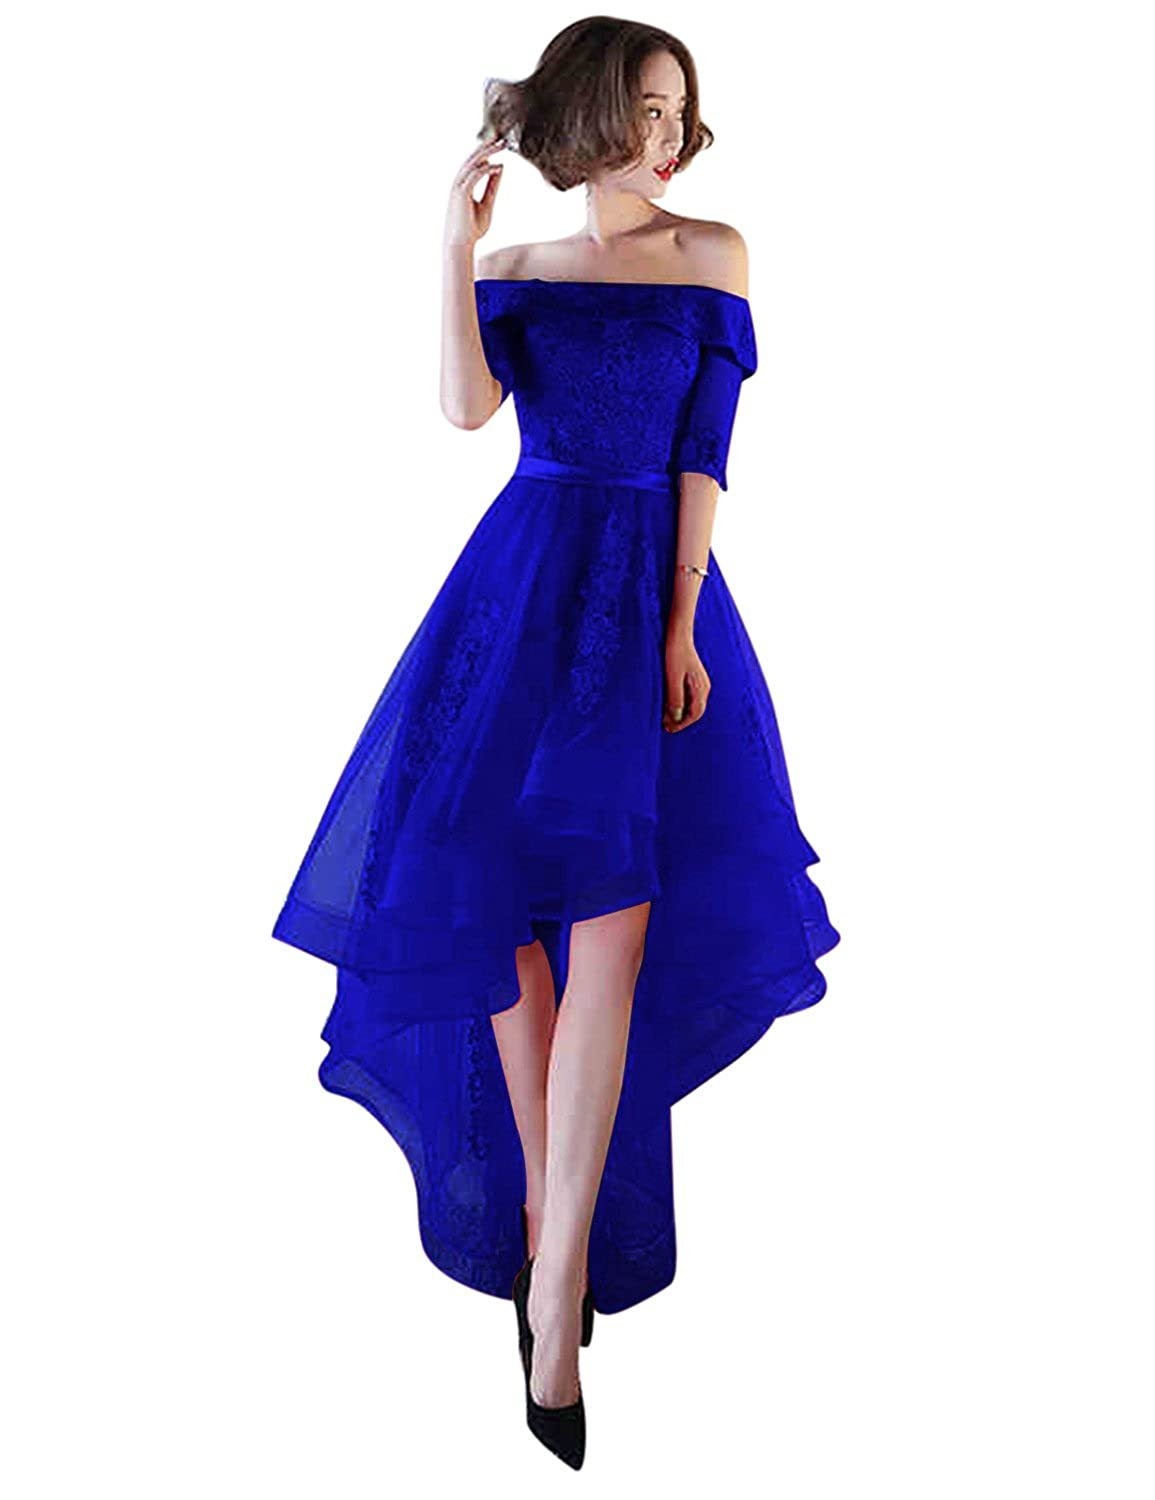 Royal bluee BessWedding Women's Tulle High Low Homecoming Dresses Short 2018 Formal Prom Gown BHZ707